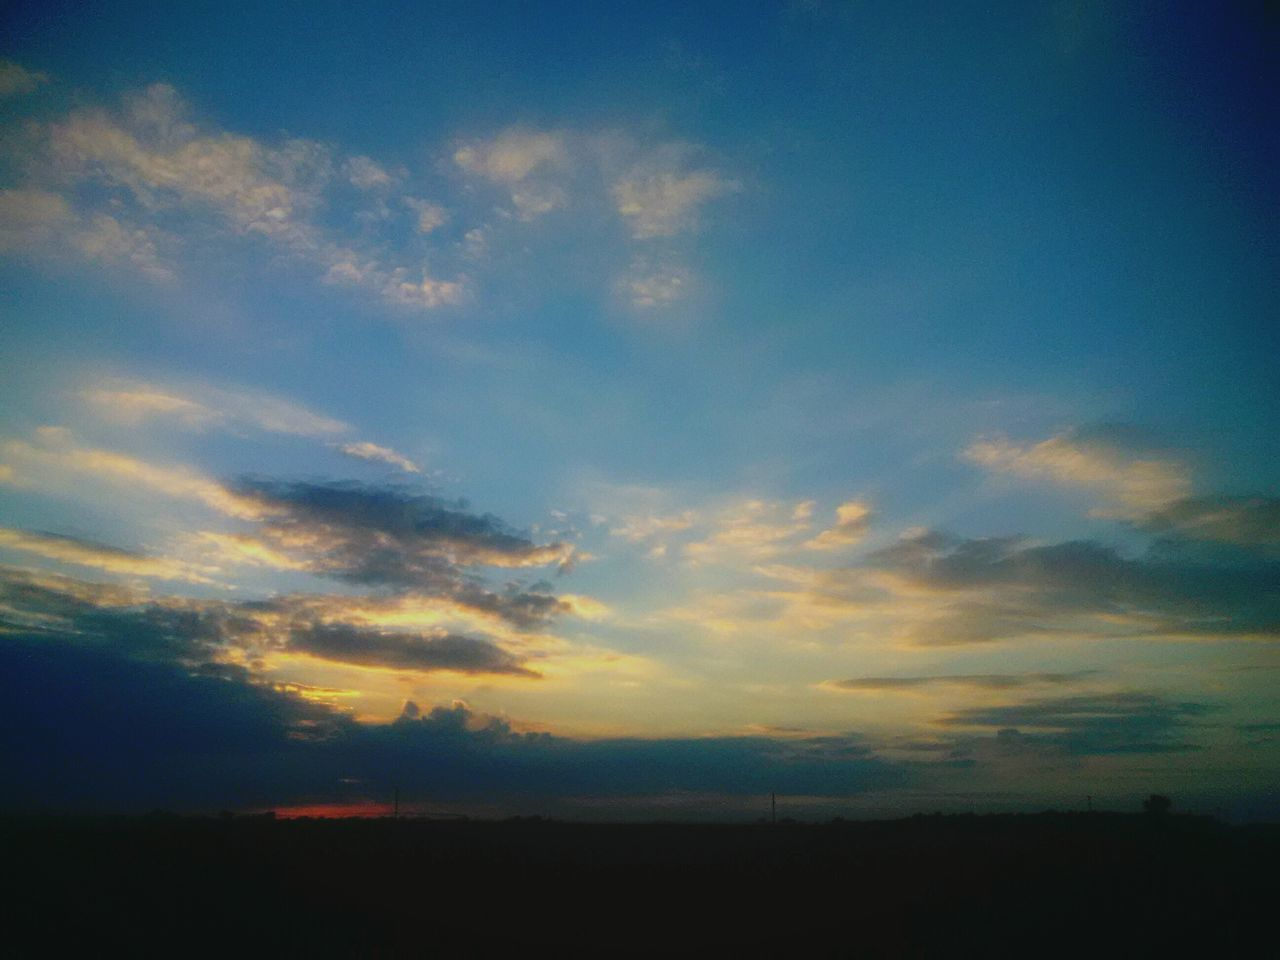 sunset, silhouette, sky, nature, landscape, tranquil scene, scenics, beauty in nature, cloud - sky, tranquility, no people, outdoors, day